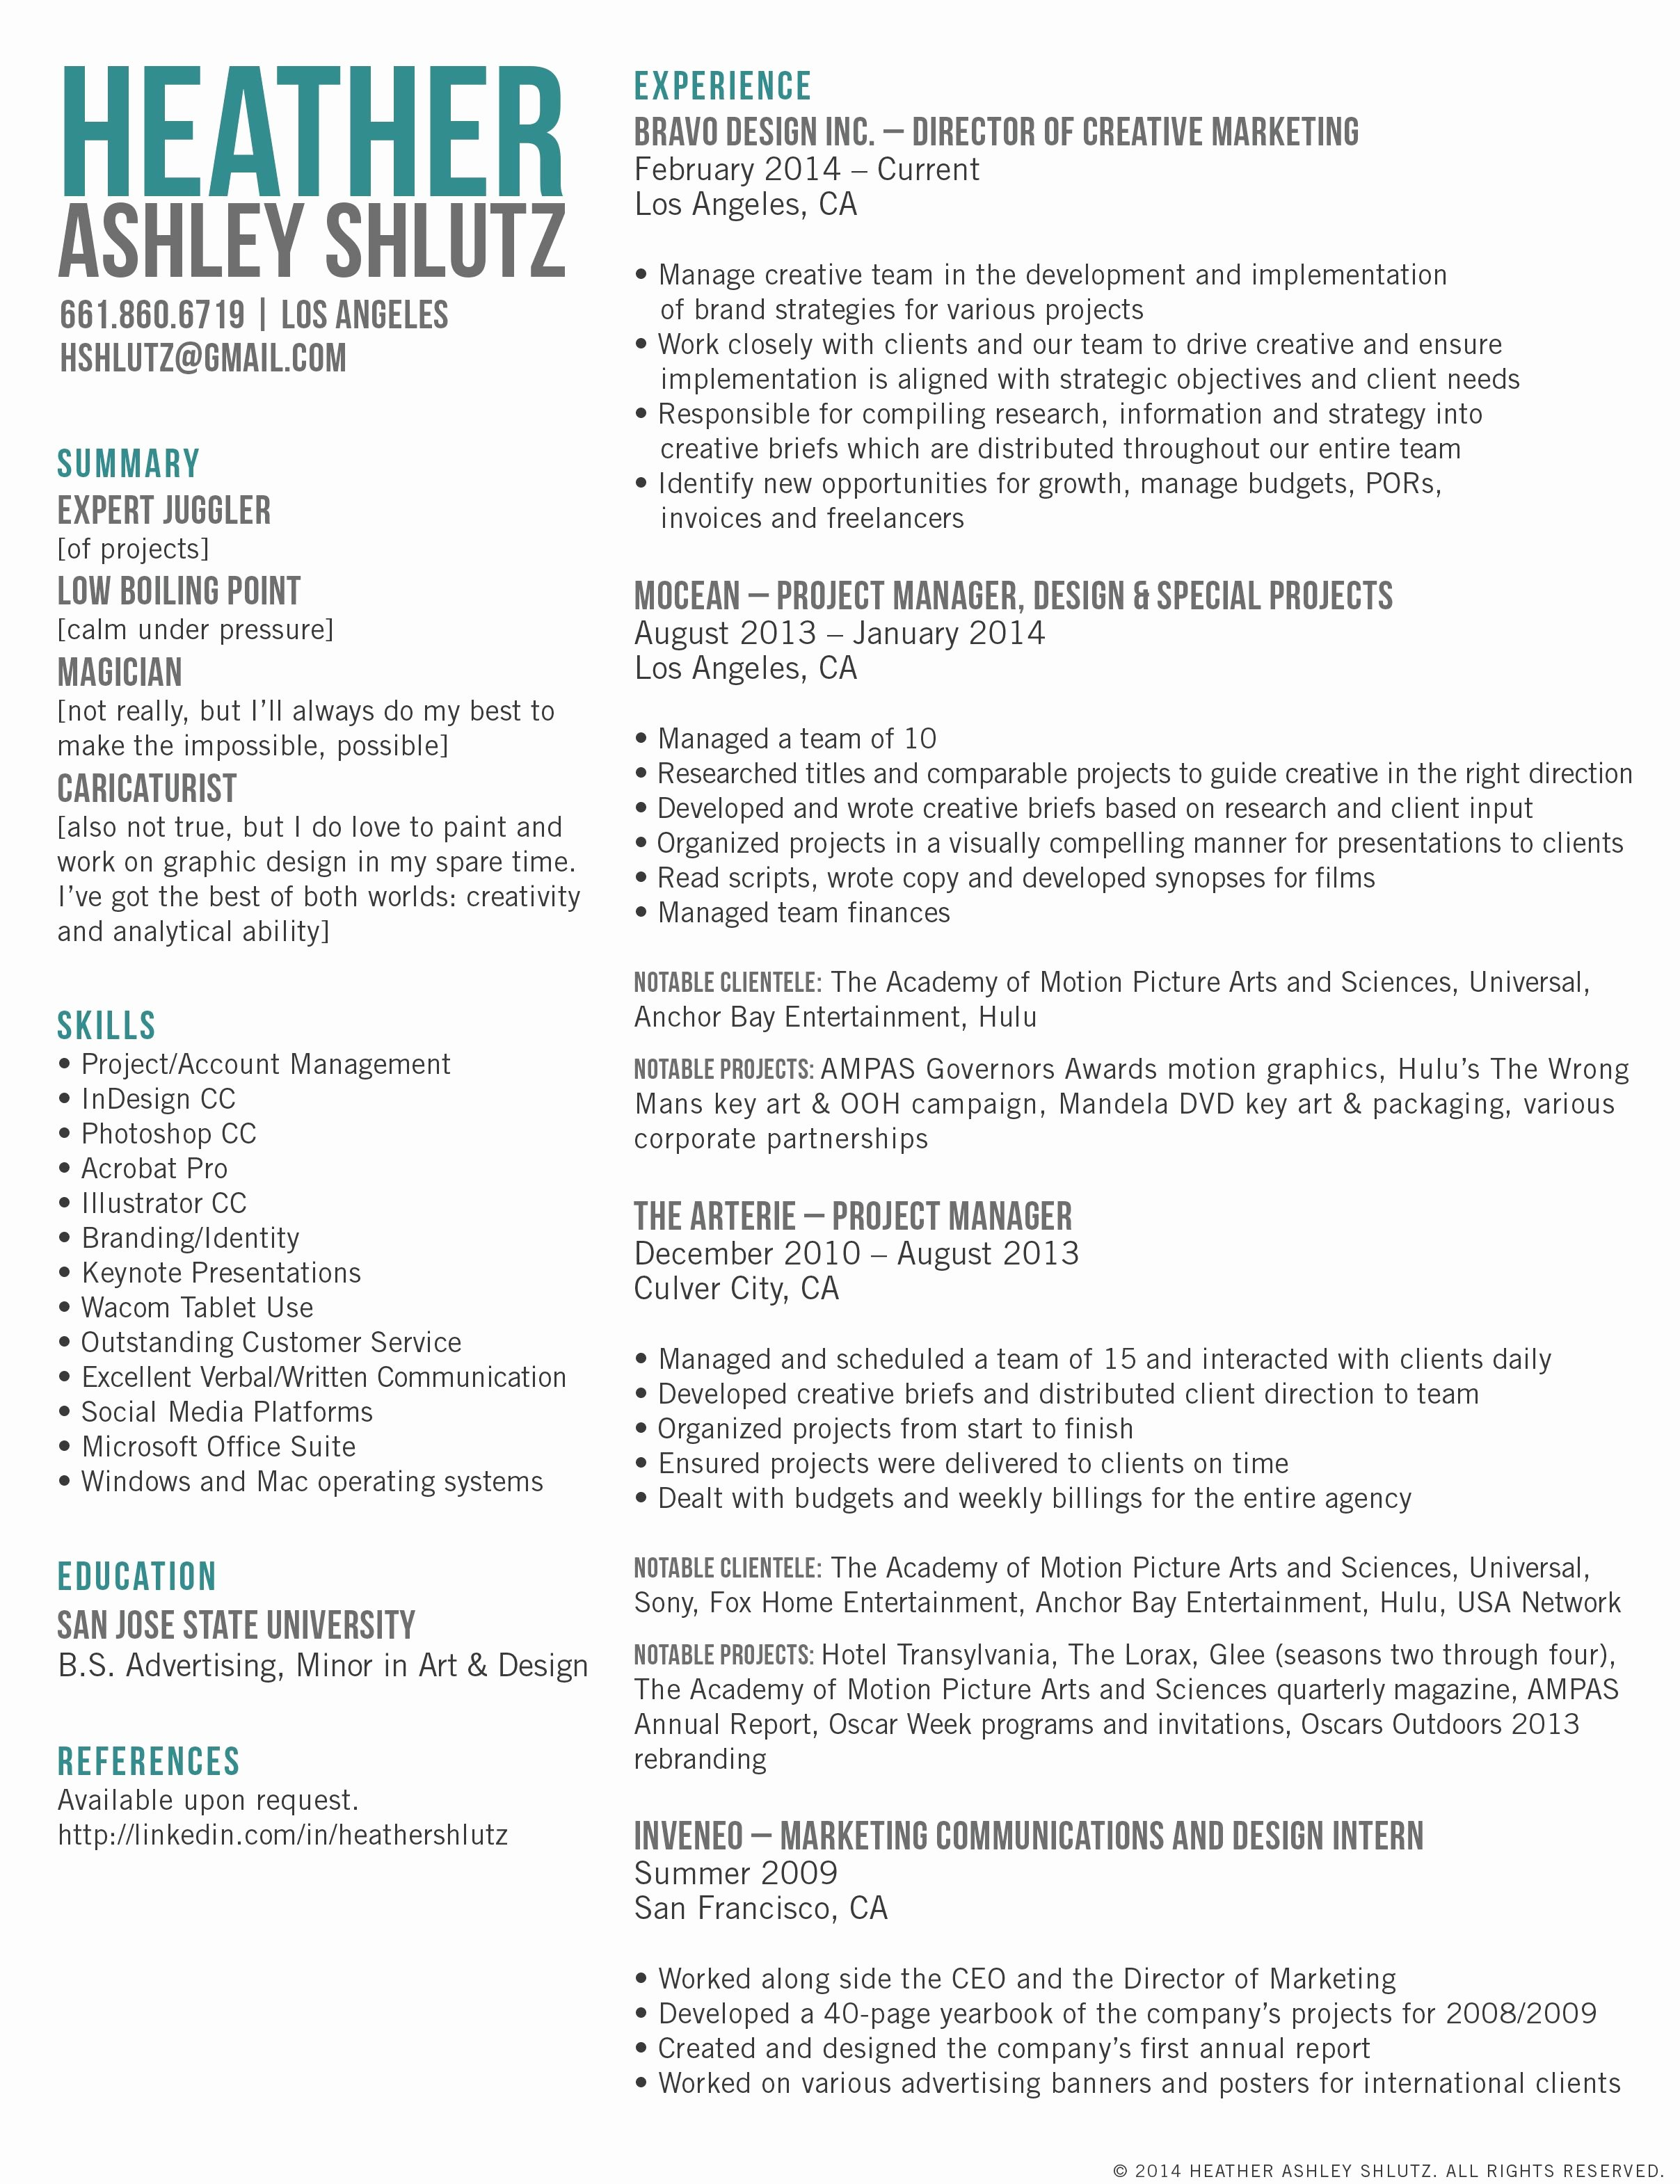 Free Marketing Resume Template Unique Creative Marketing Director Resume Google Search